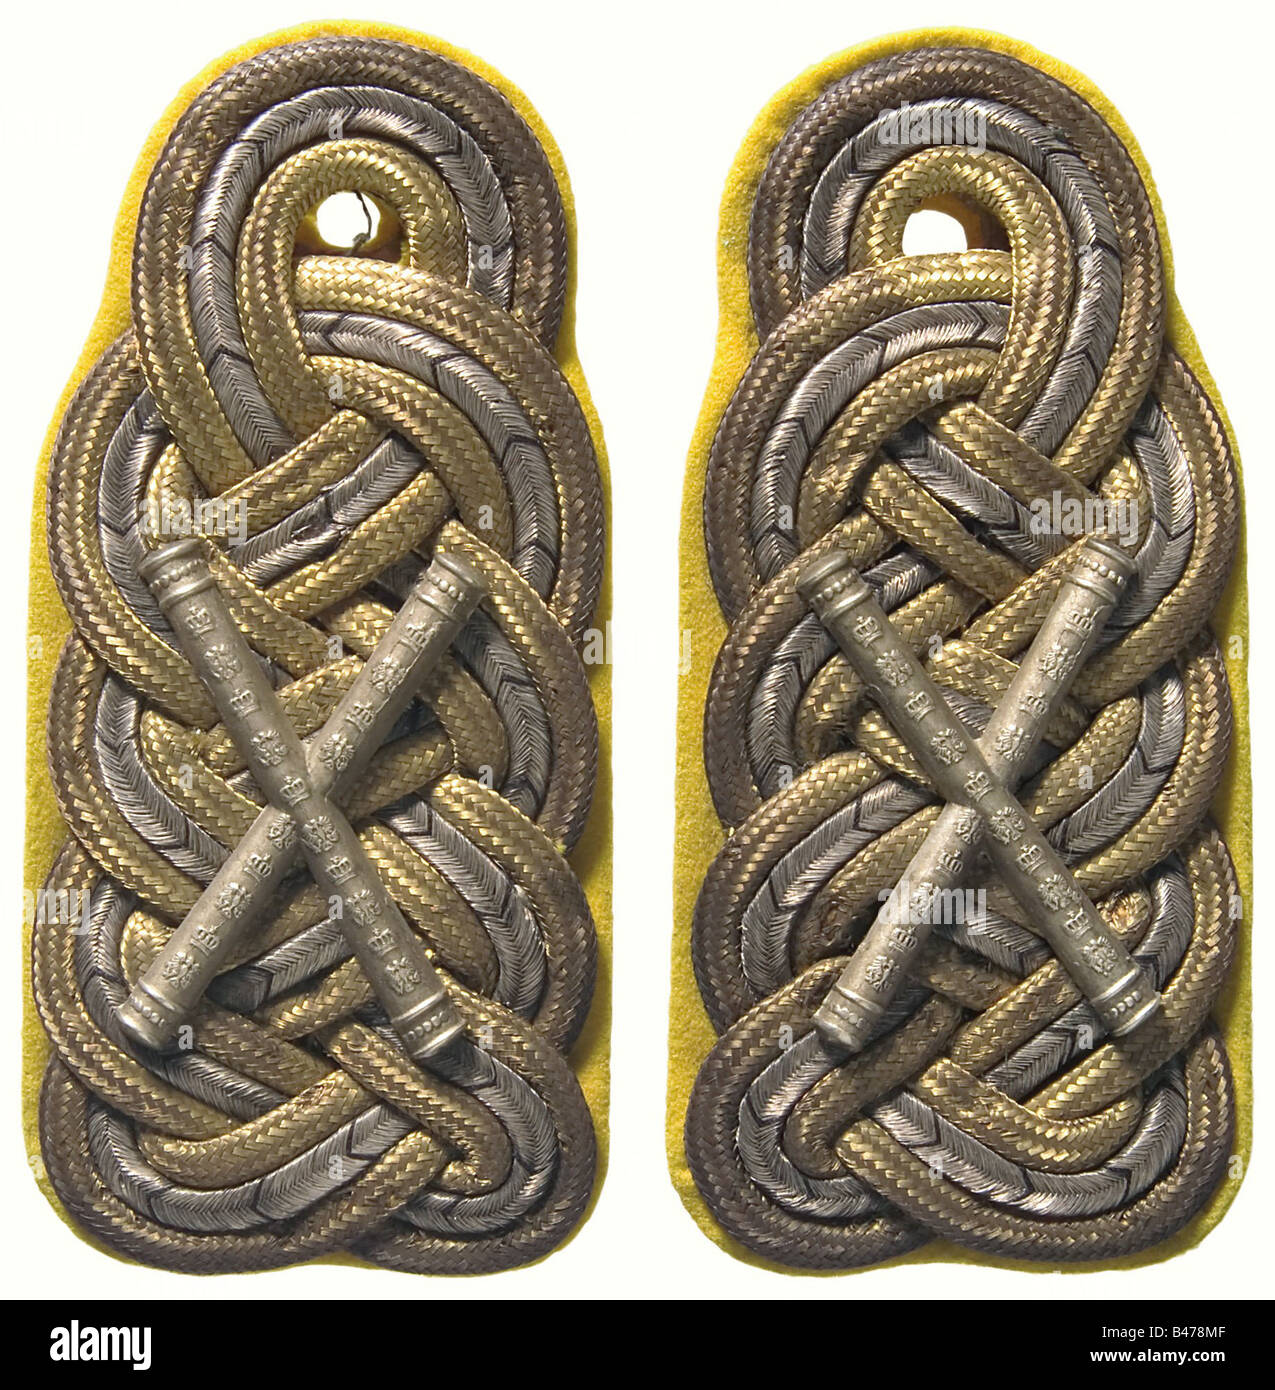 Field Marshal Paul von Hindenburg., A pair of shoulder boards for a Field Marshal and detached officer of the 3rd - Stock Image